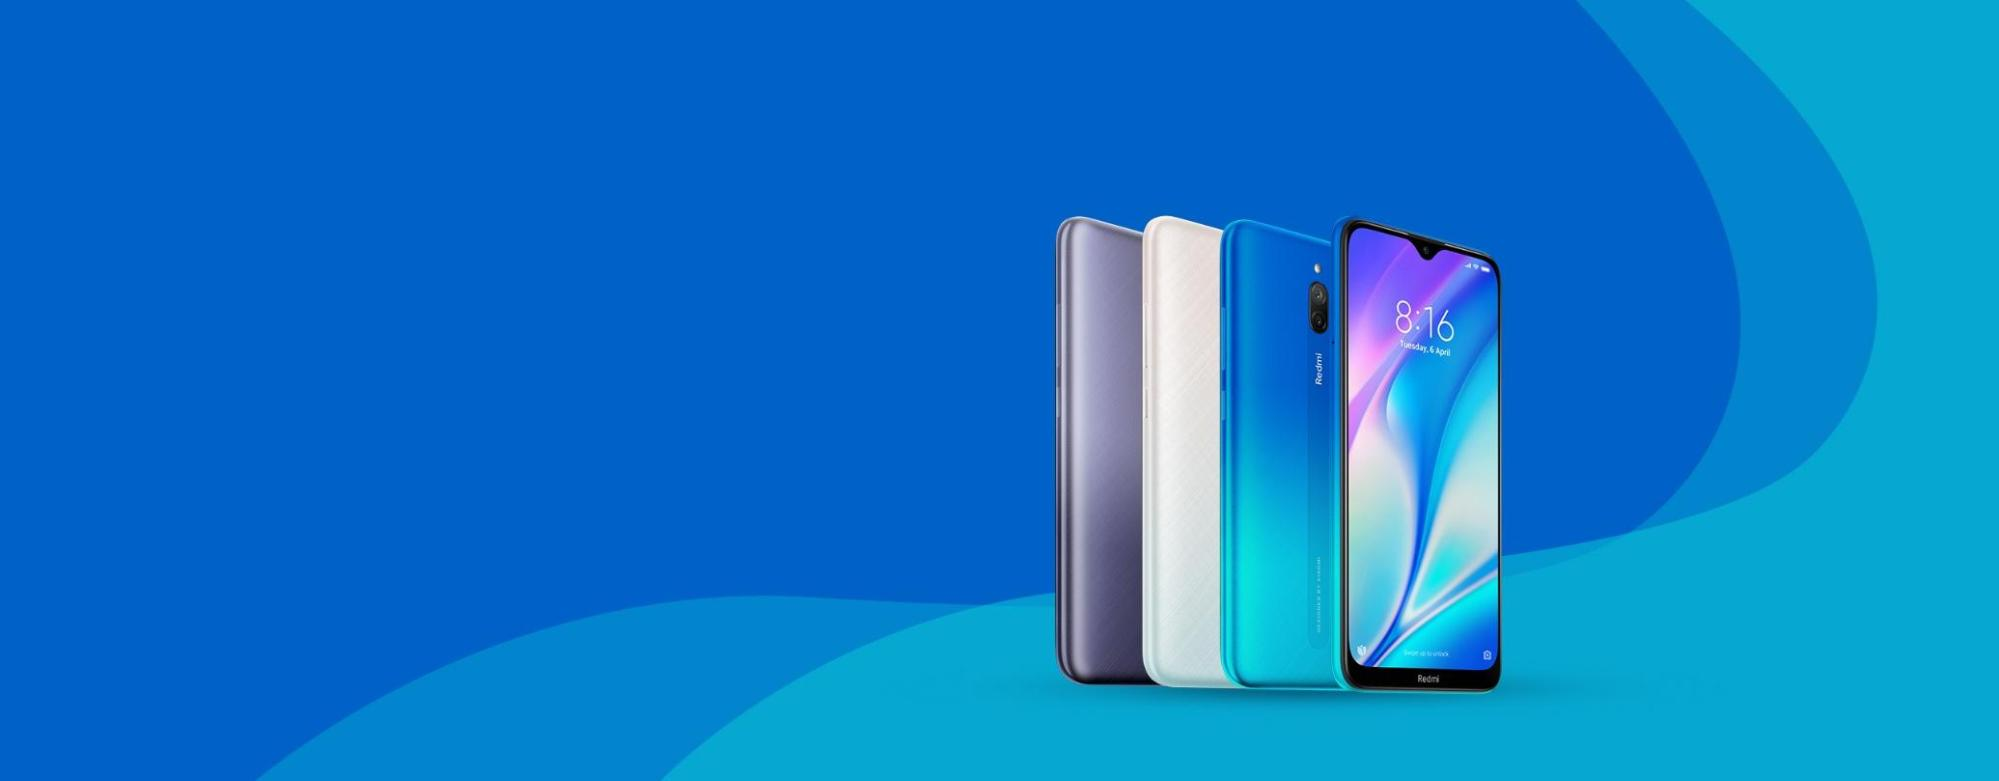 Redmi 8A Dual general outer design in different colors